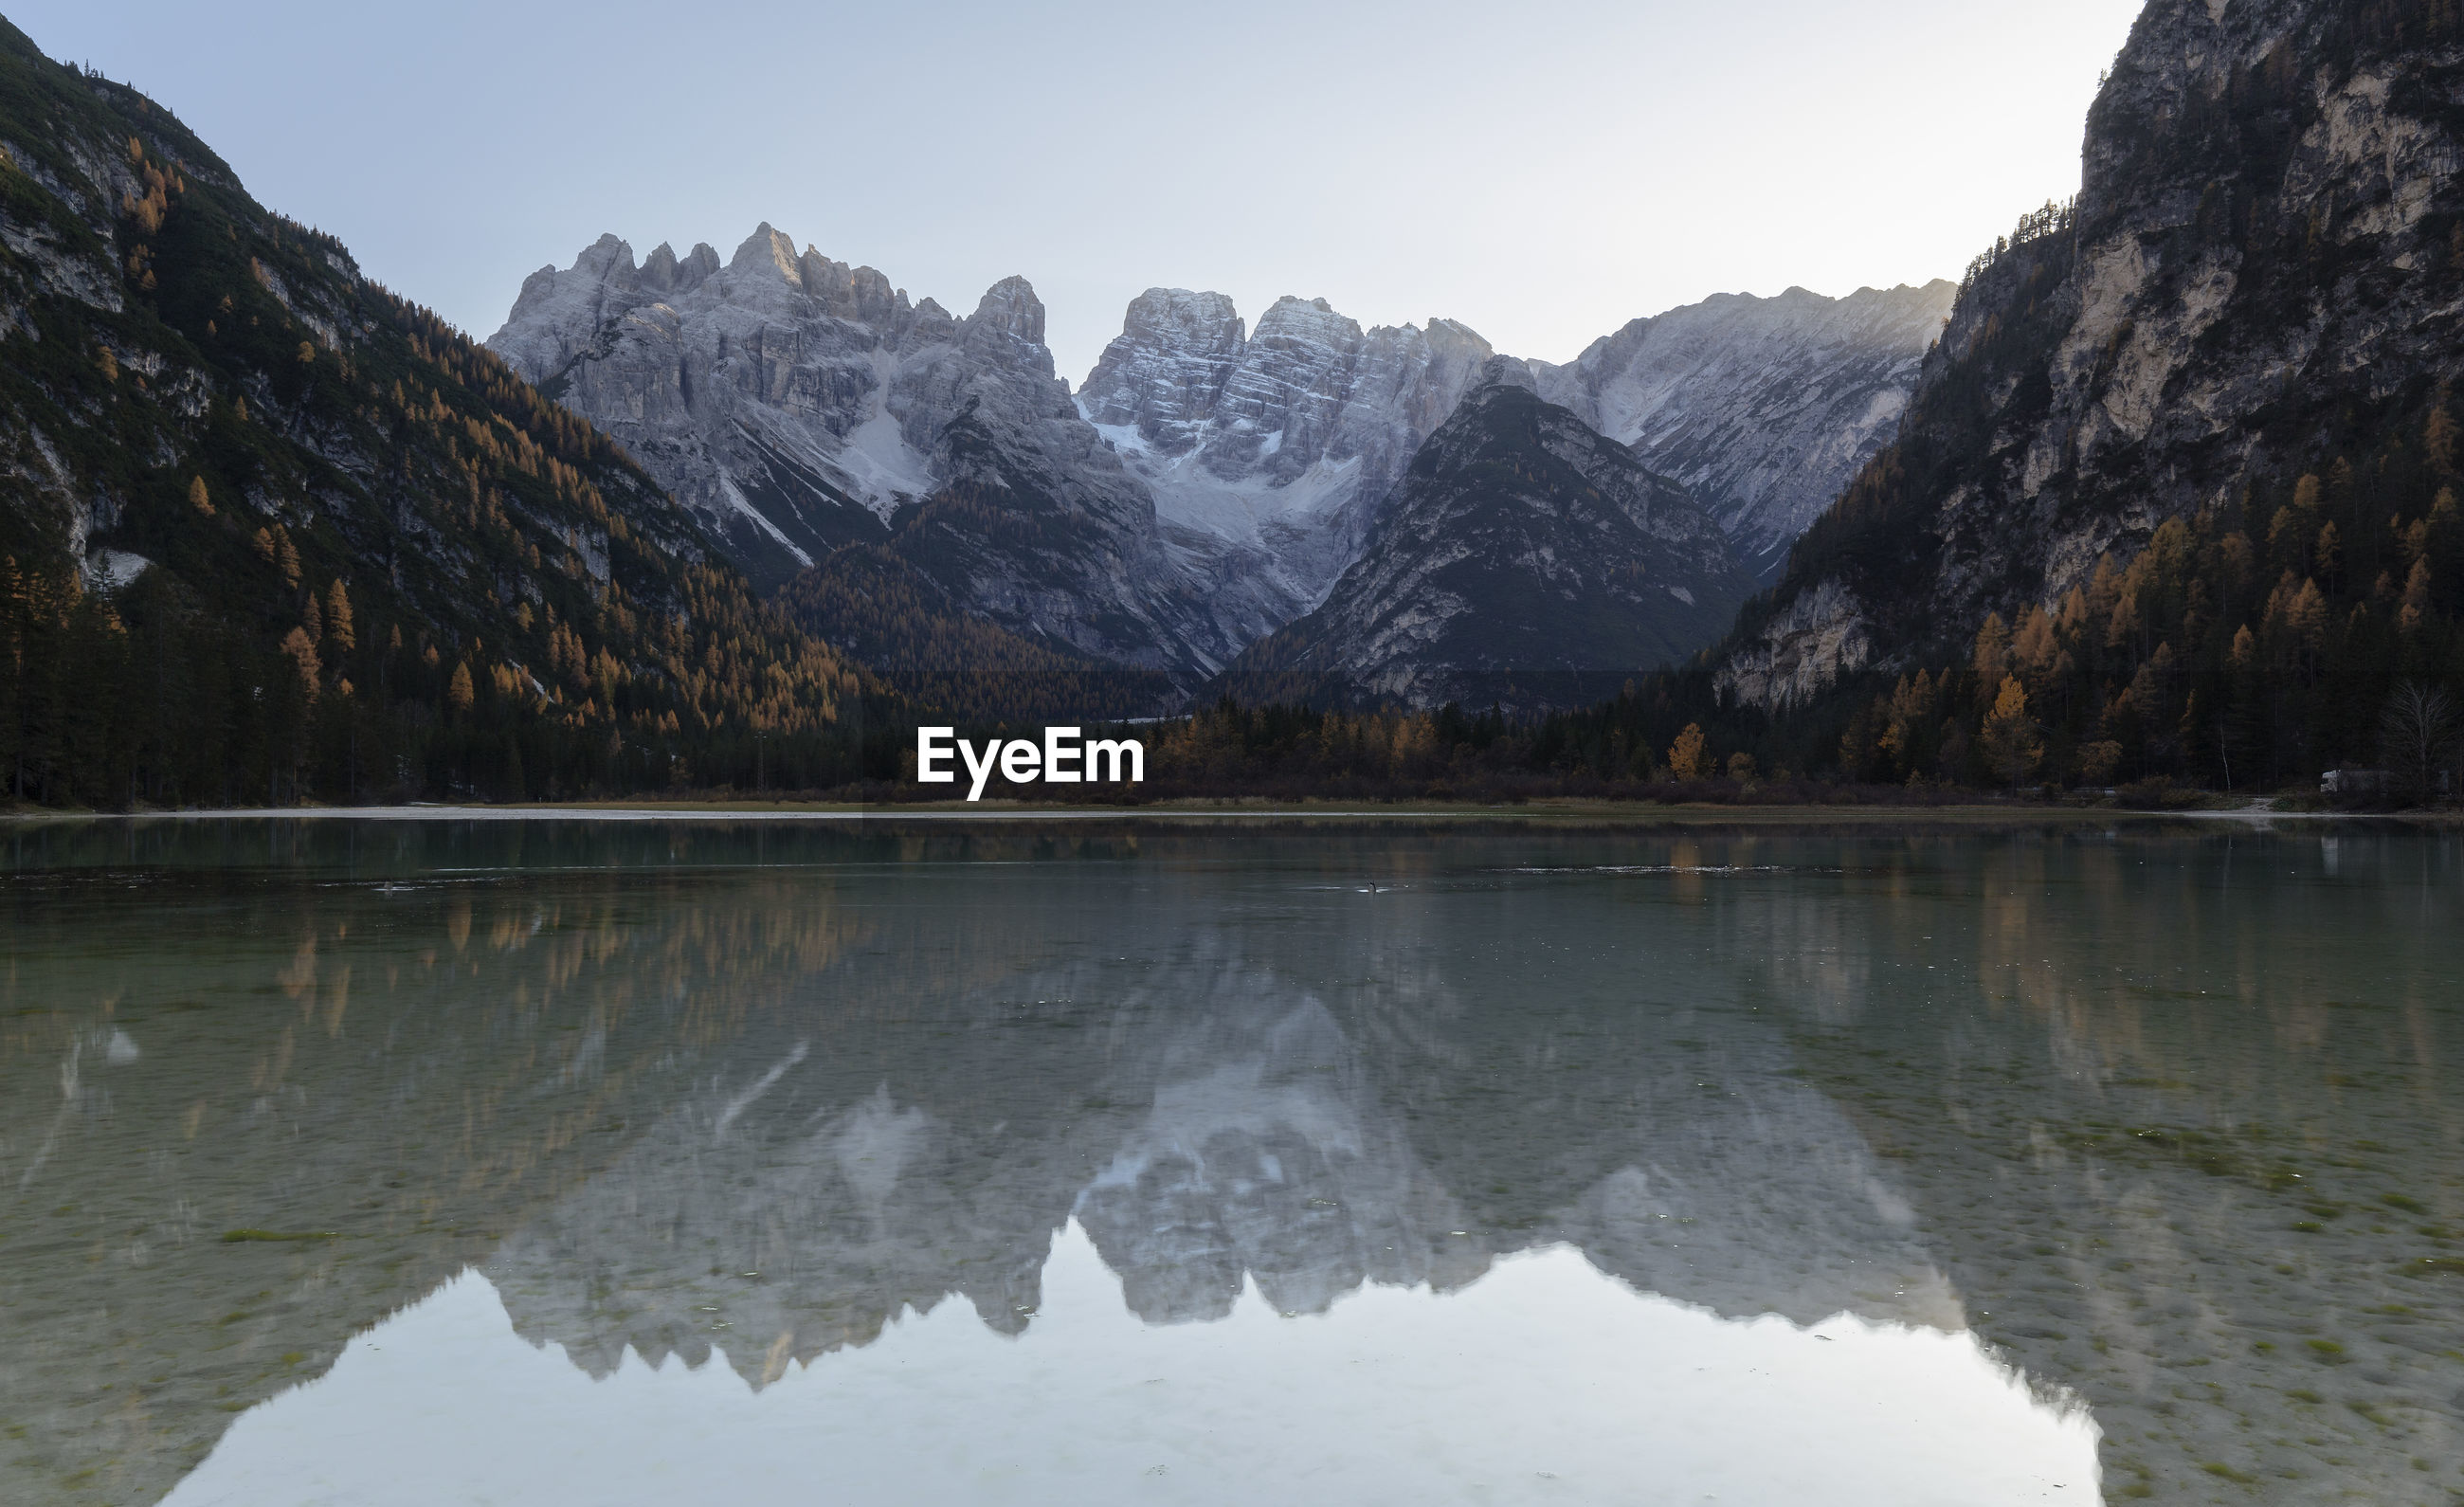 Scenic view of lake by snowcapped mountains against sky in dolomites mountains